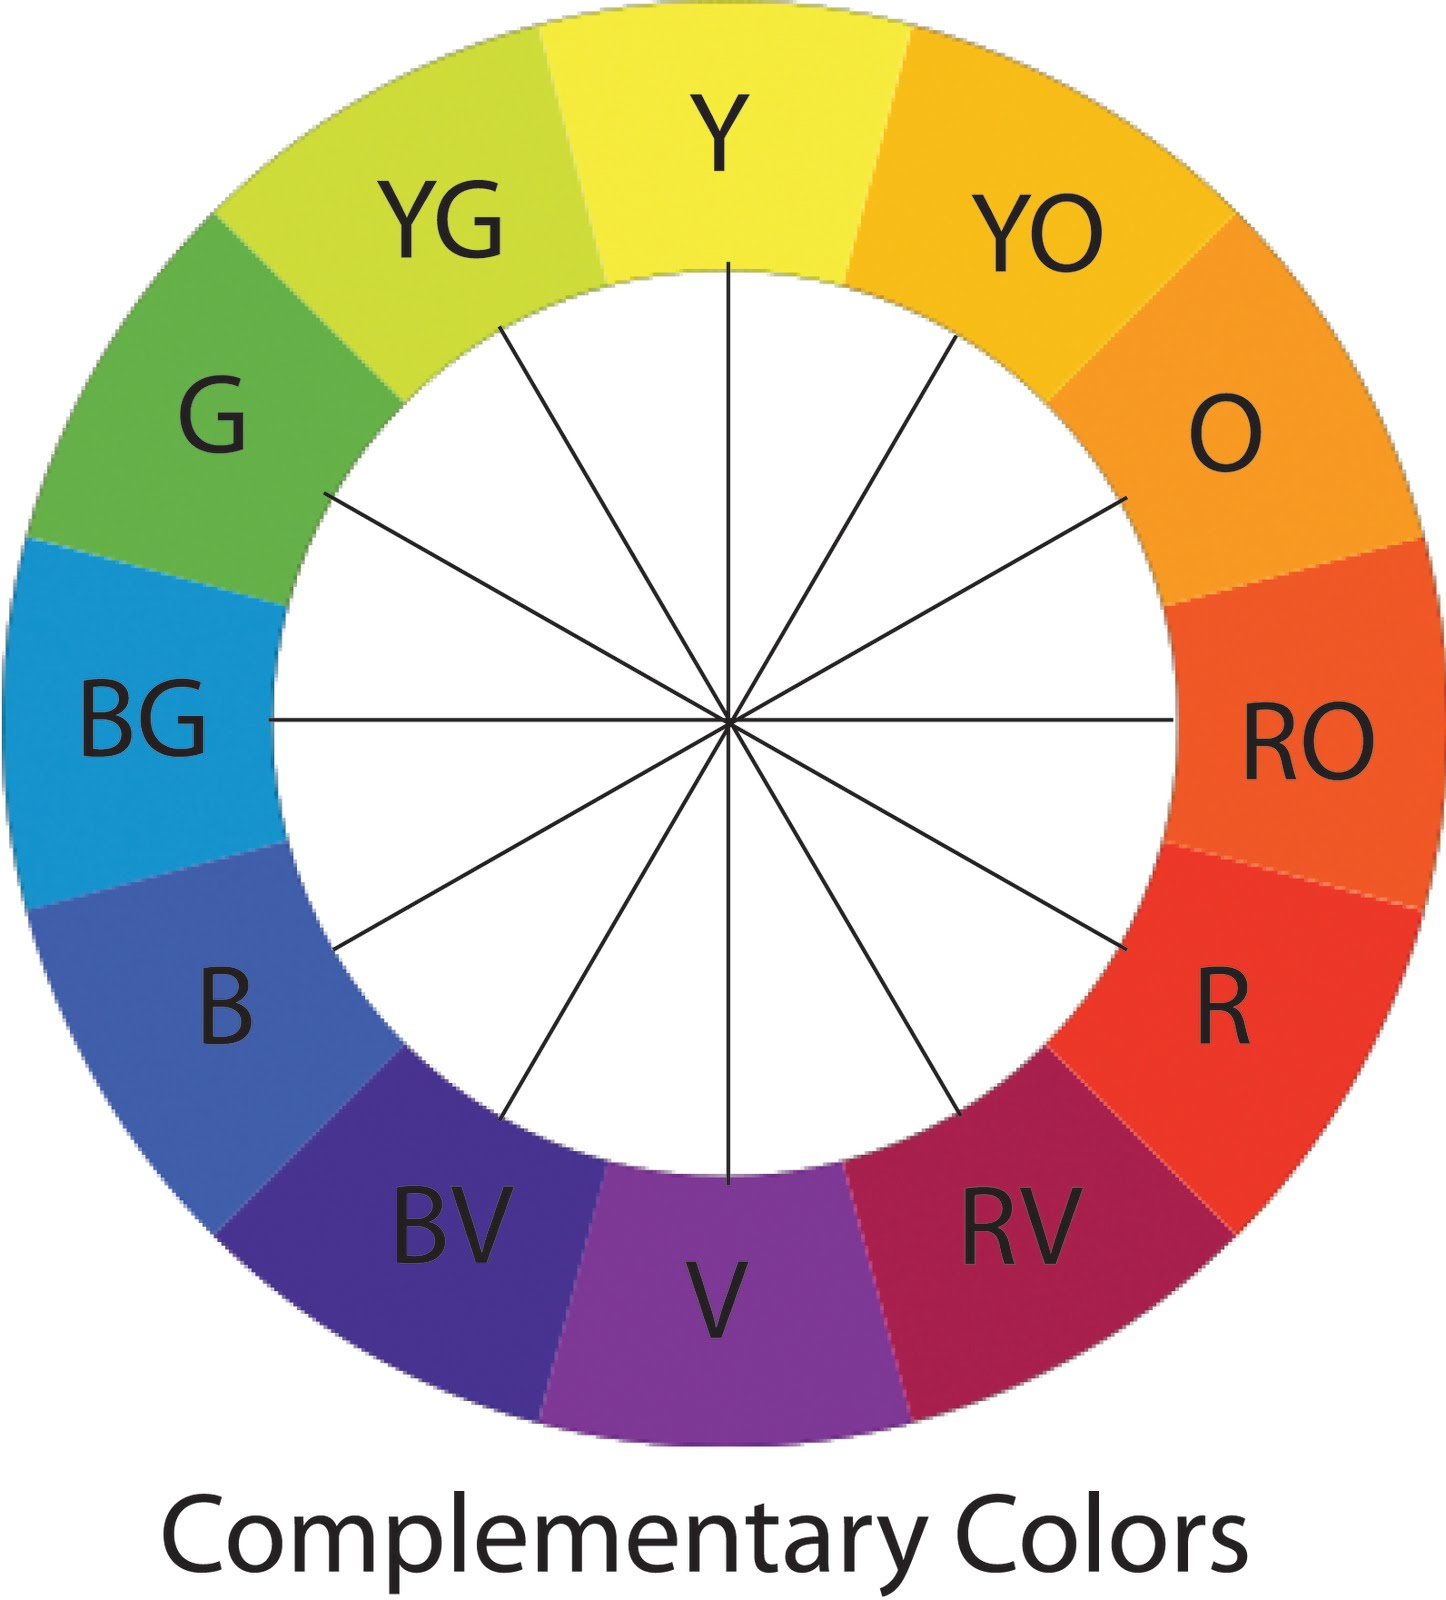 Digeny design basics color theory - What colors compliment blue ...